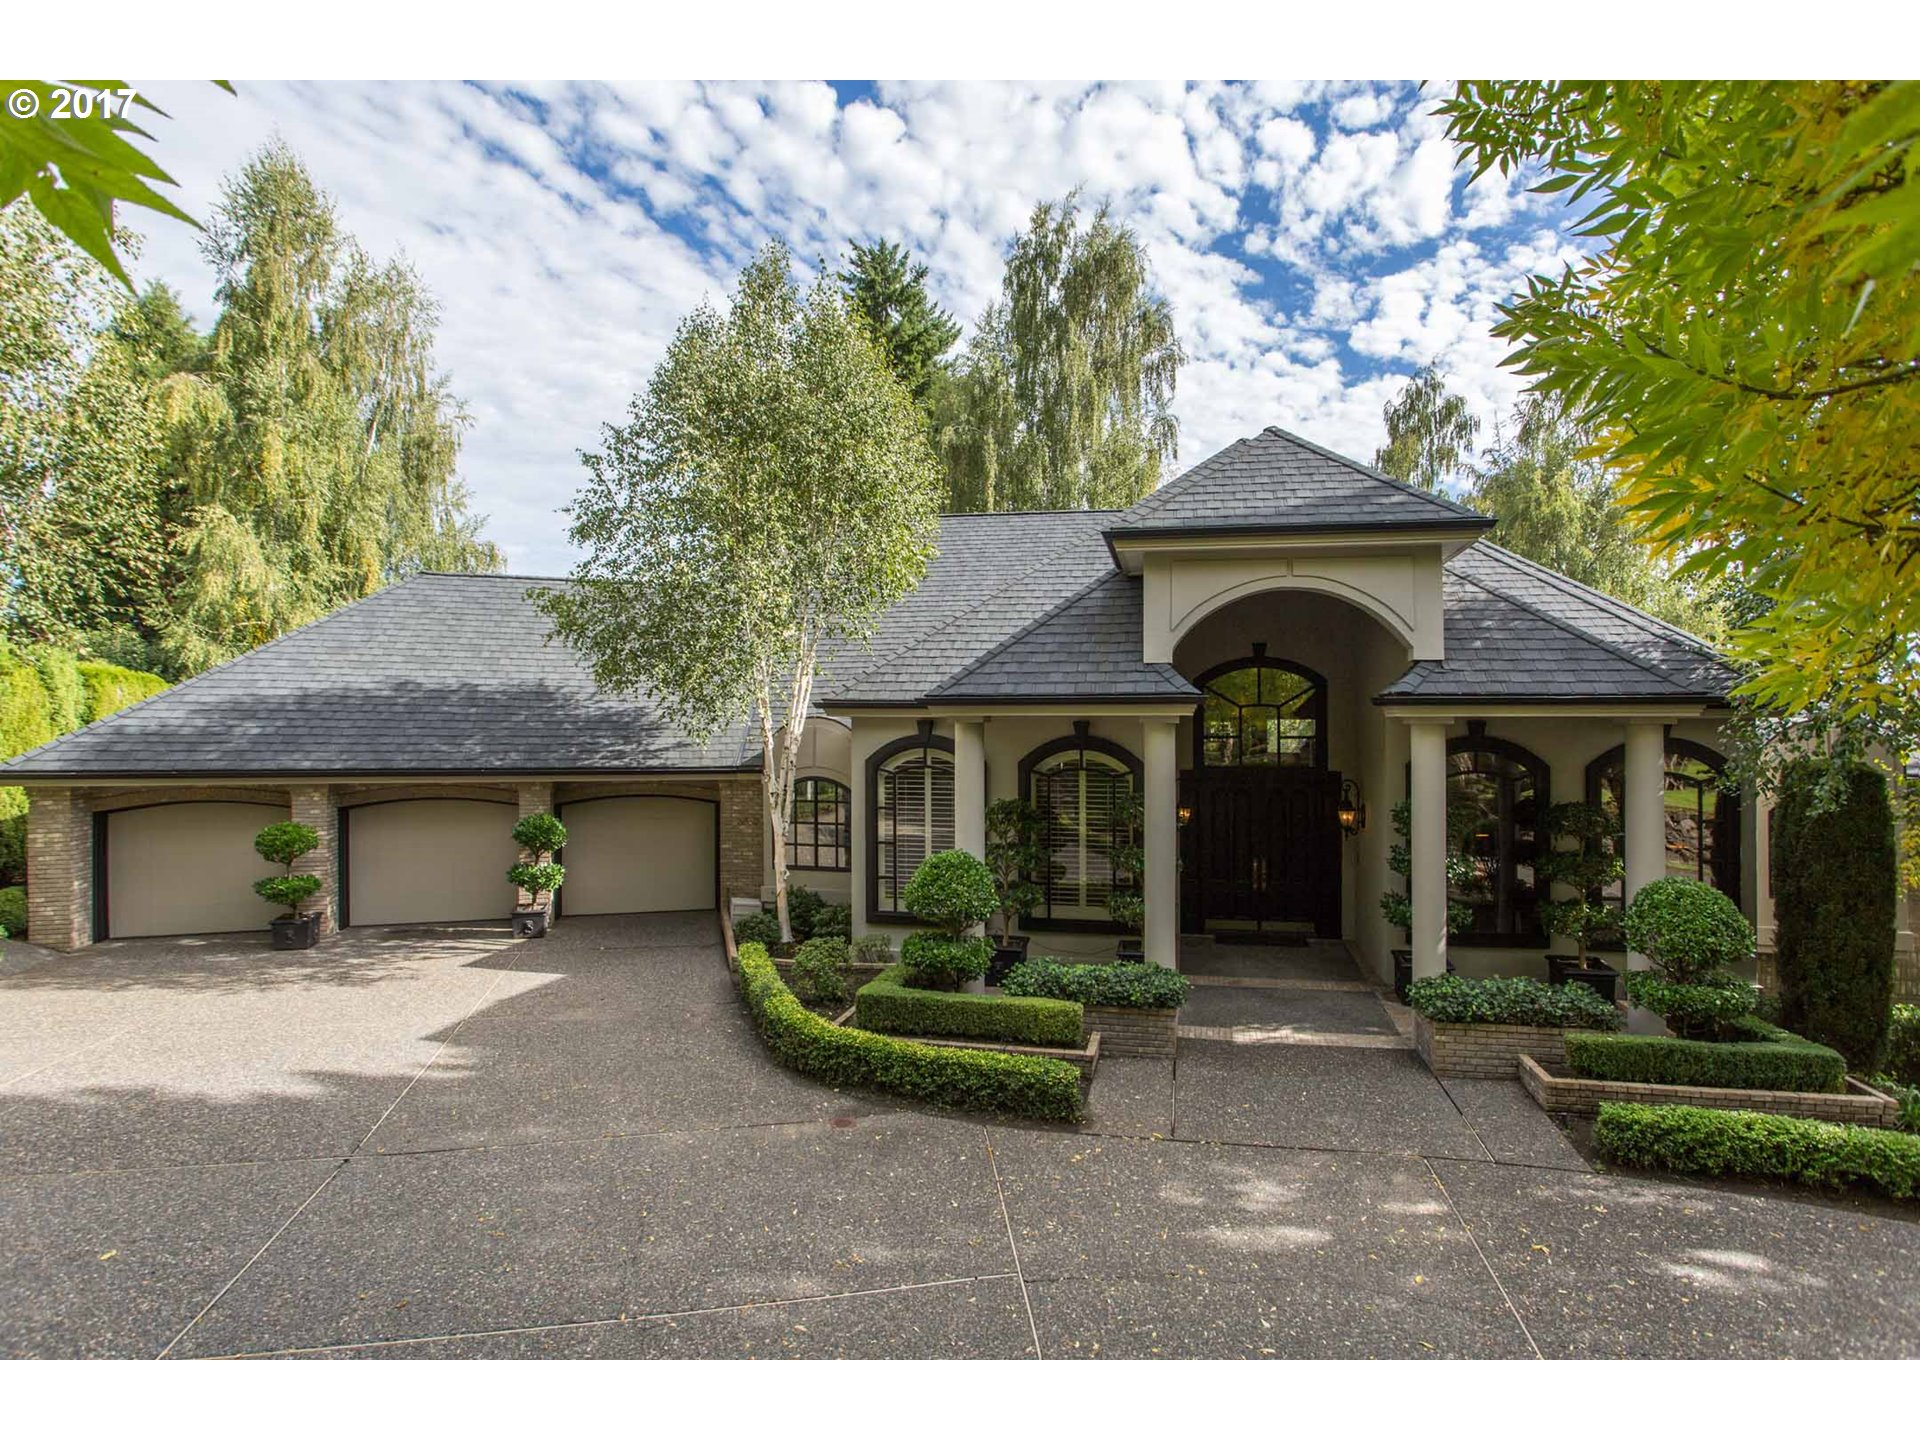 3832 WELLINGTON CT, West Linn, OR 97068